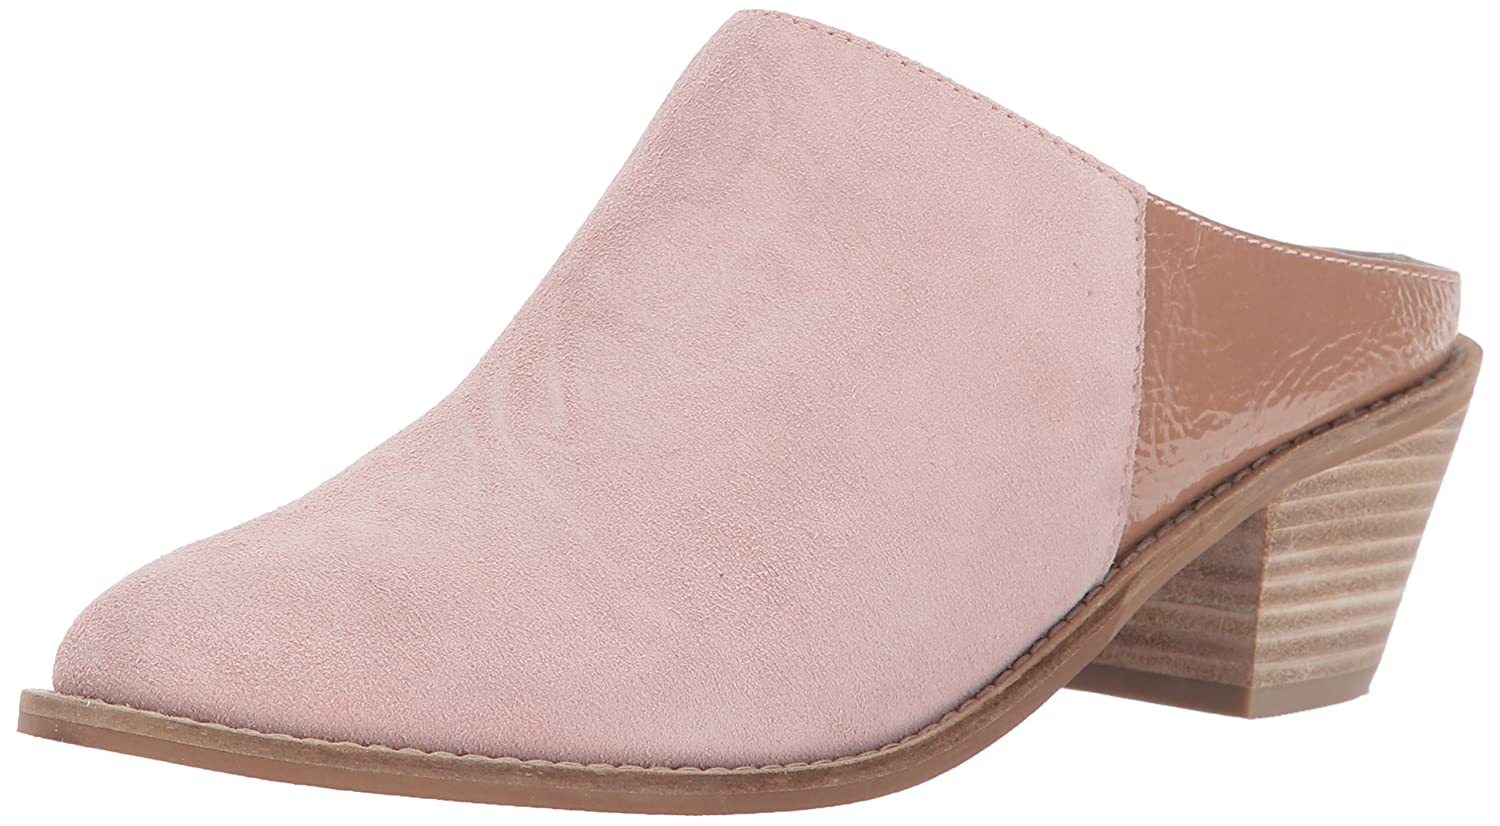 Kelsi Dagger Brooklyn Women's Kellum Ankle Boot B01NCW24OC Parent